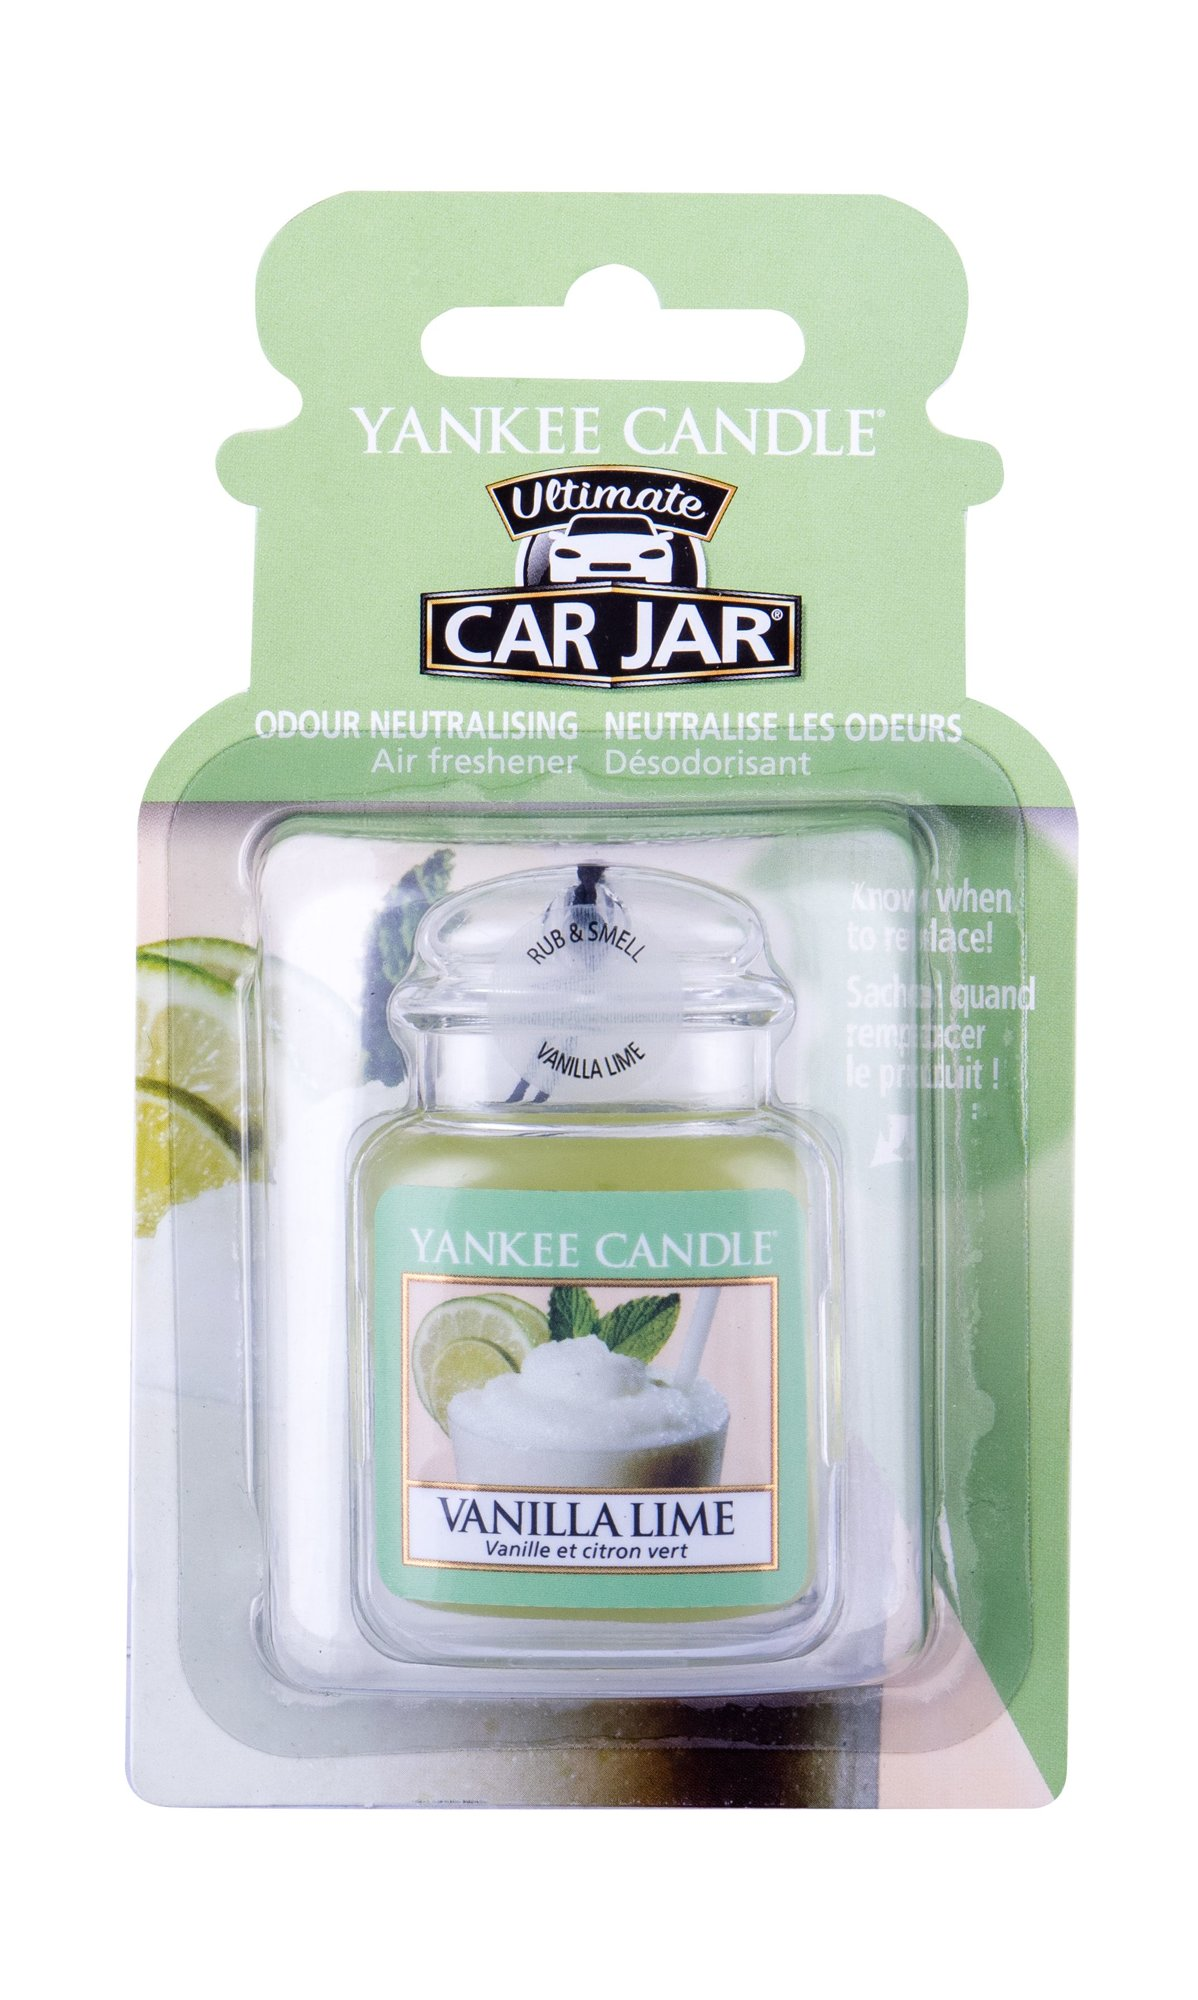 Yankee Candle Vanilla Lime  Vůně do auta, U, 1 ks